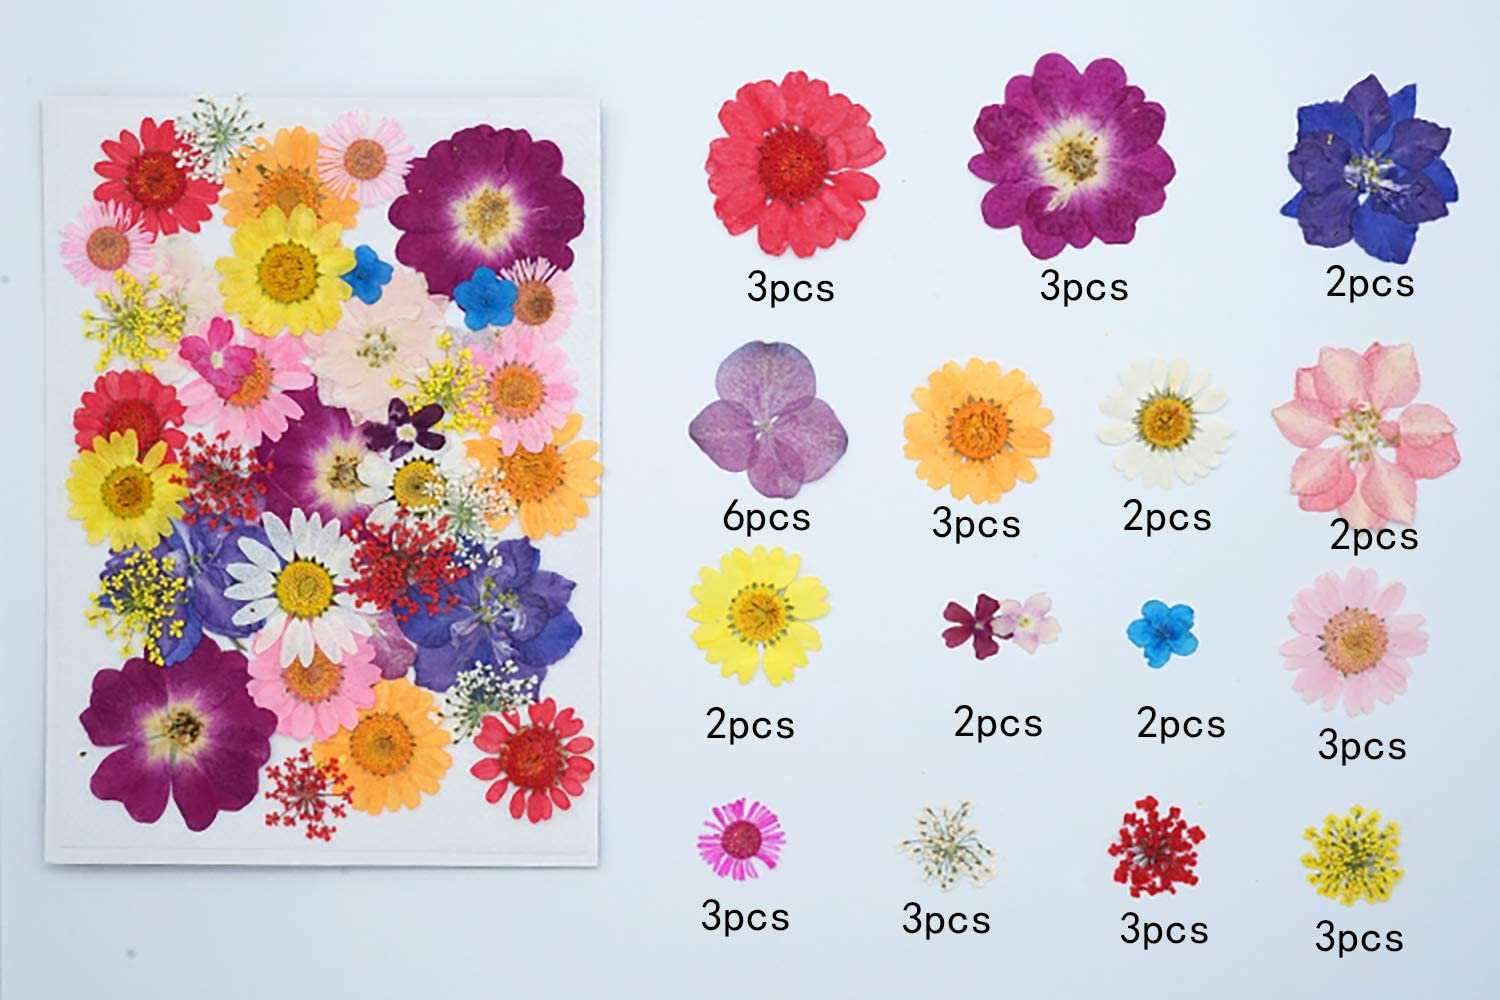 DKAF 4 Packs 96 Pieces Natural Dried Pressed Flowers Leaves with Tweezers Daisy Leaves DIY Accessories Scrapbooking Candle Resin Jewelry Decoration Crafts Making